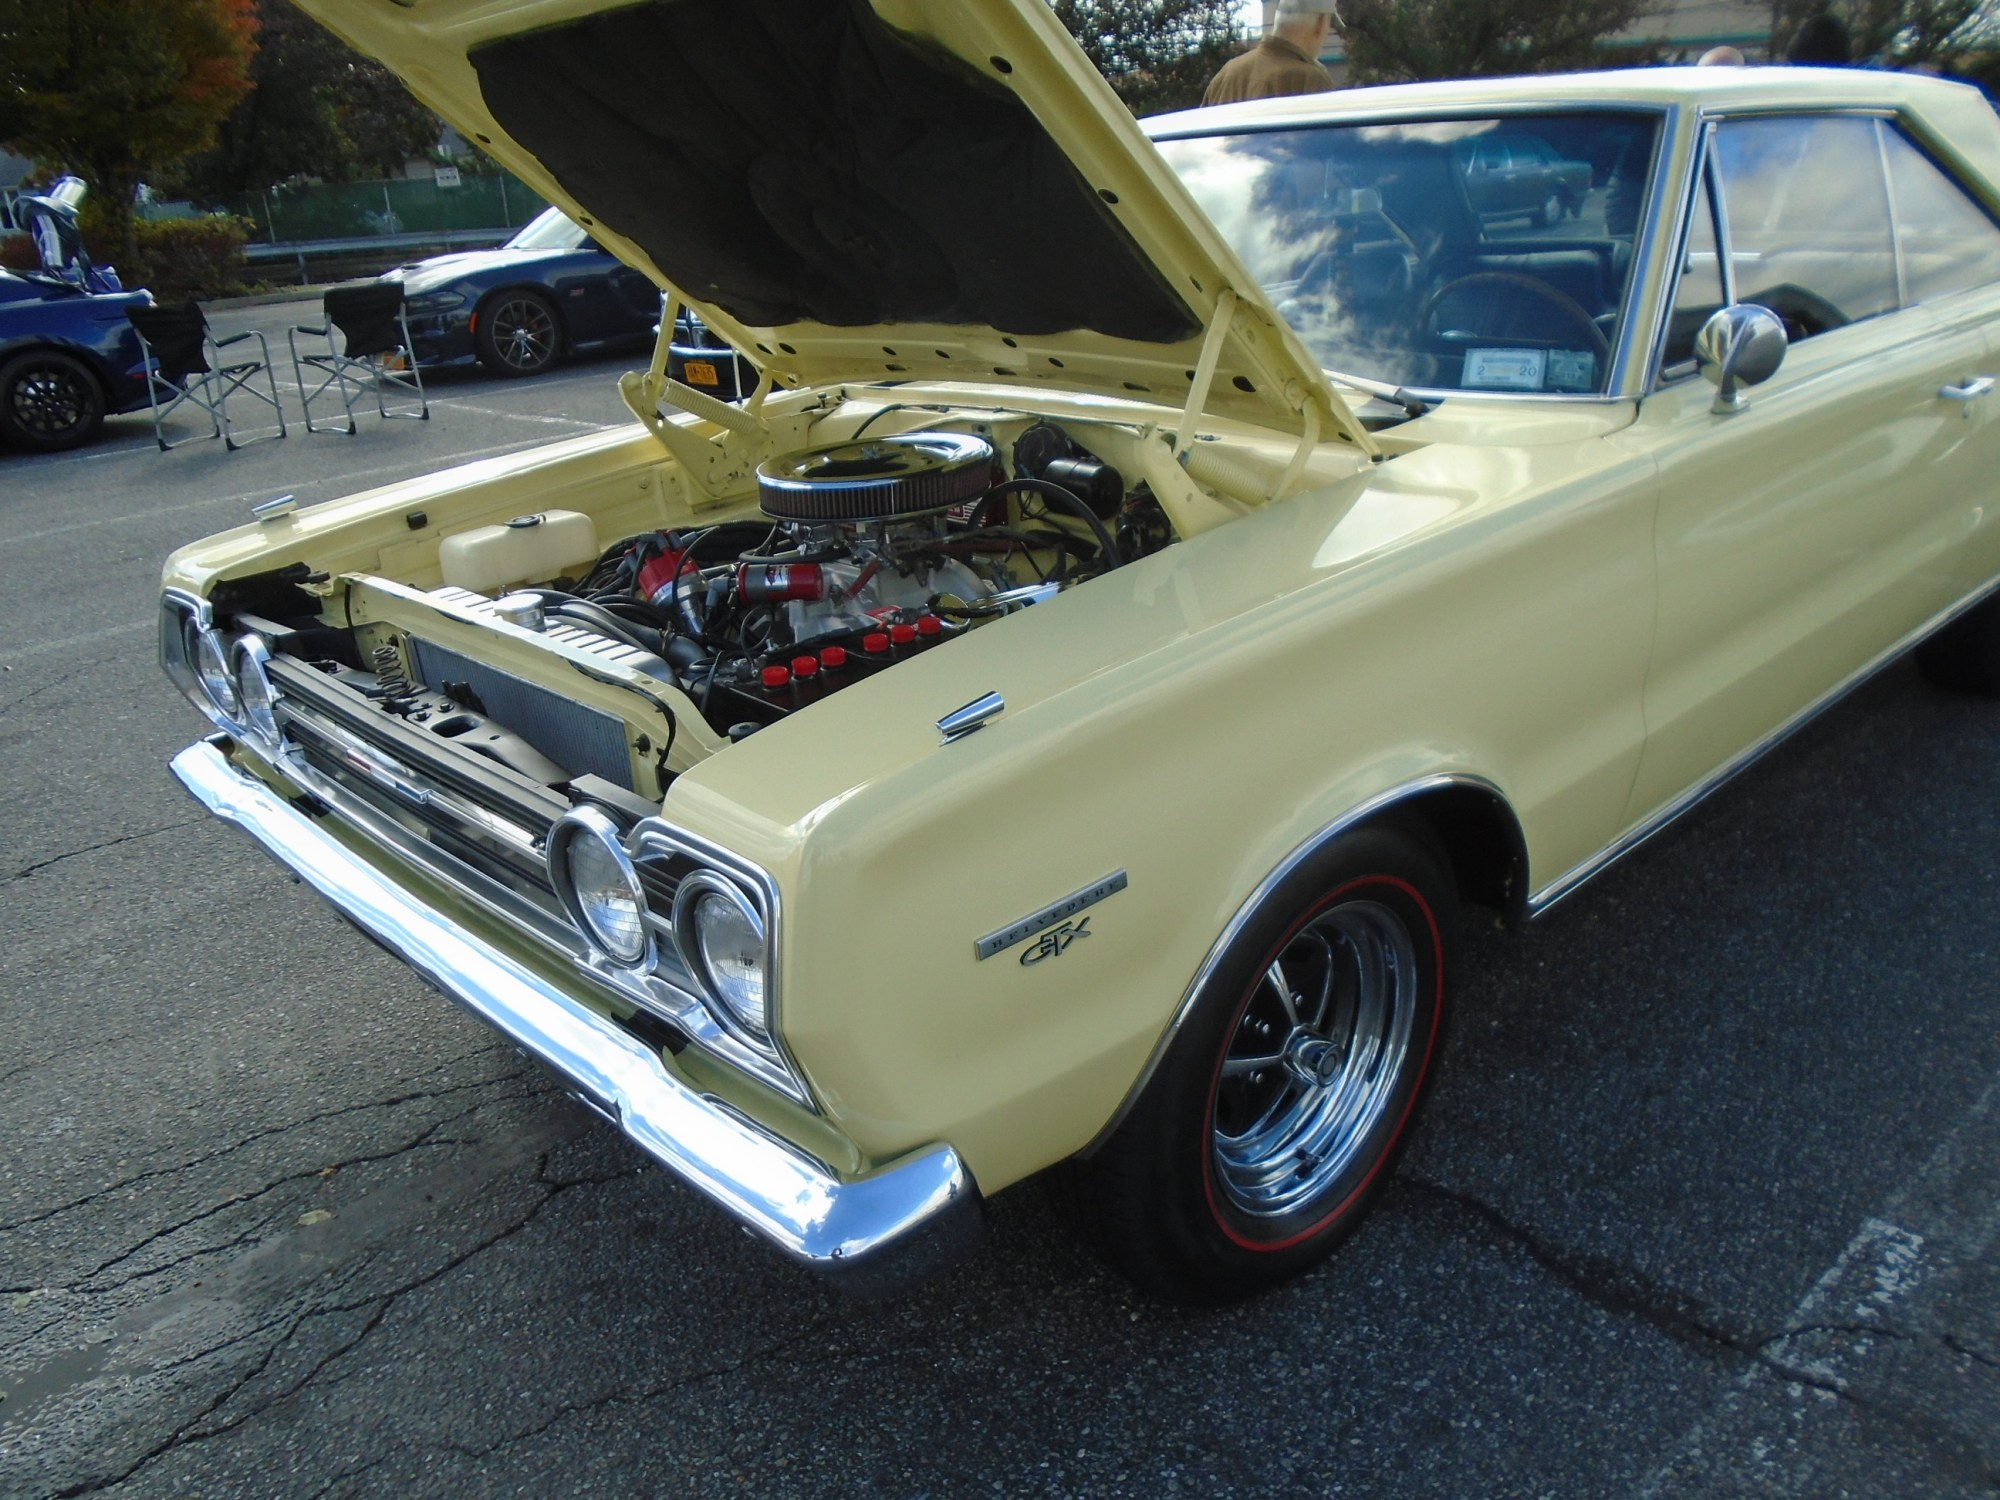 hight resolution of for sale 1967 gtx call john 631 242 3030 asking 35 000